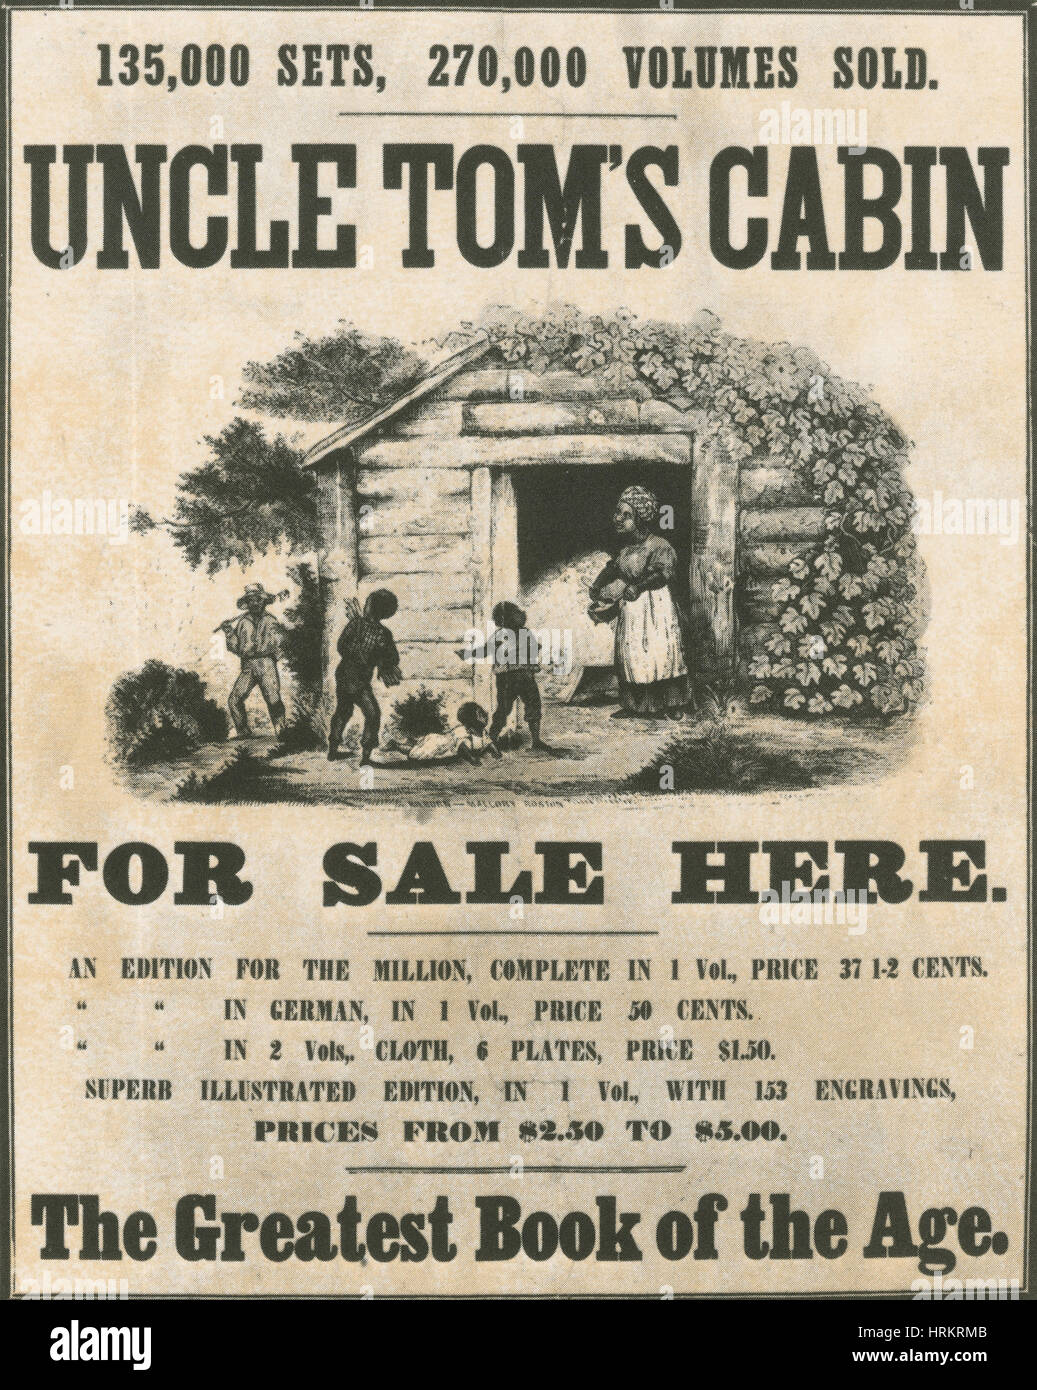 Uncle Tom's Cabin Poster - Stock Image